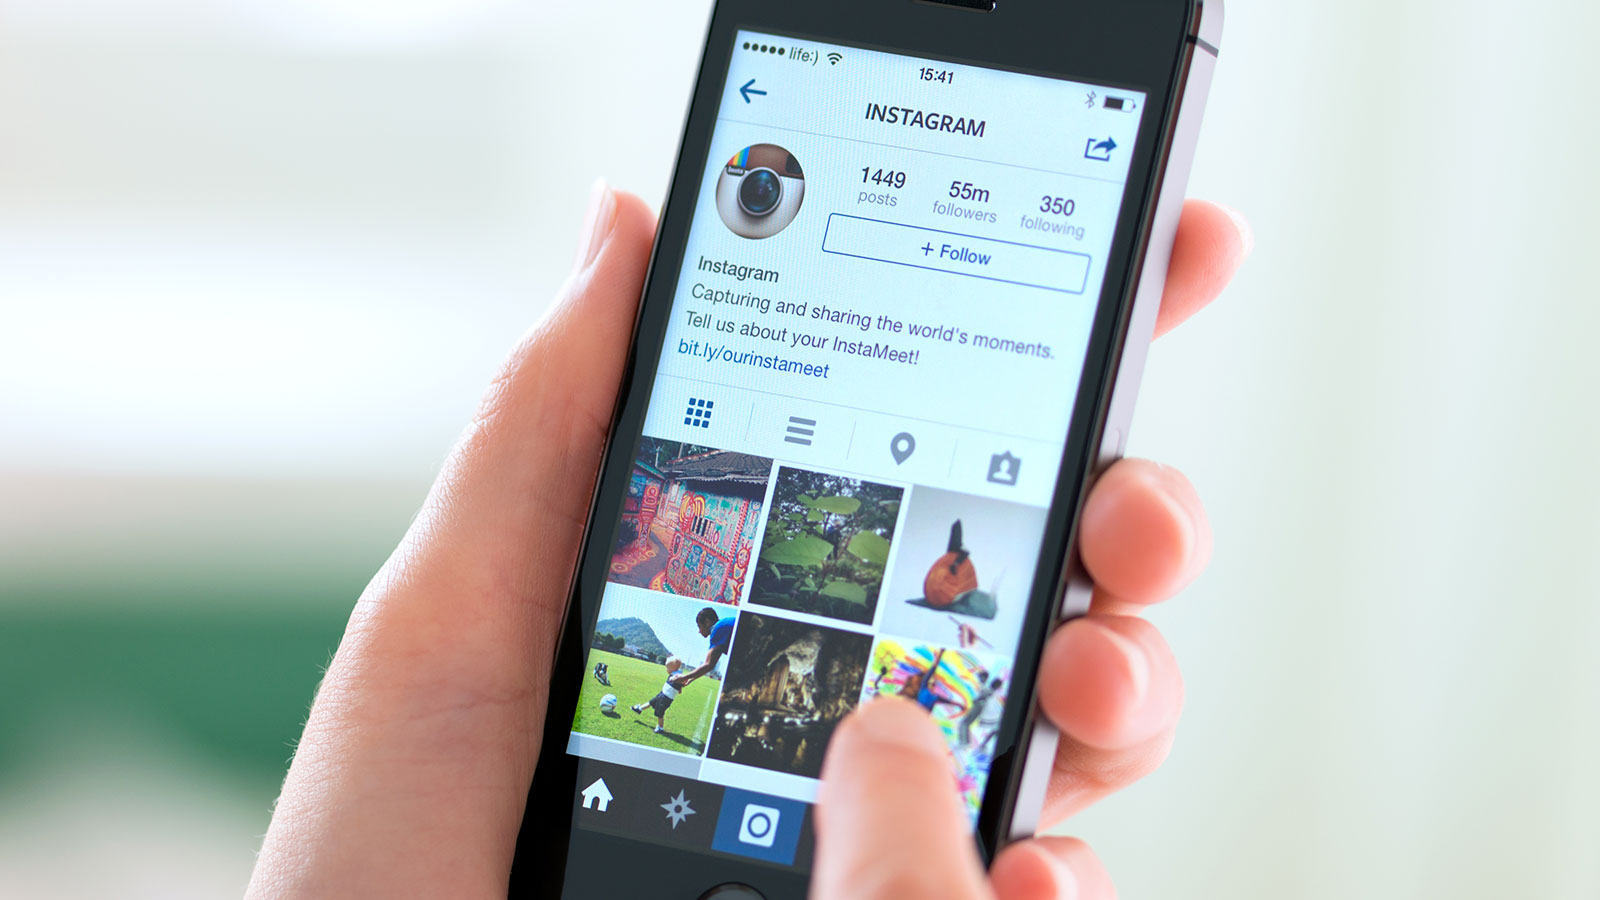 Instagram on an iPhone